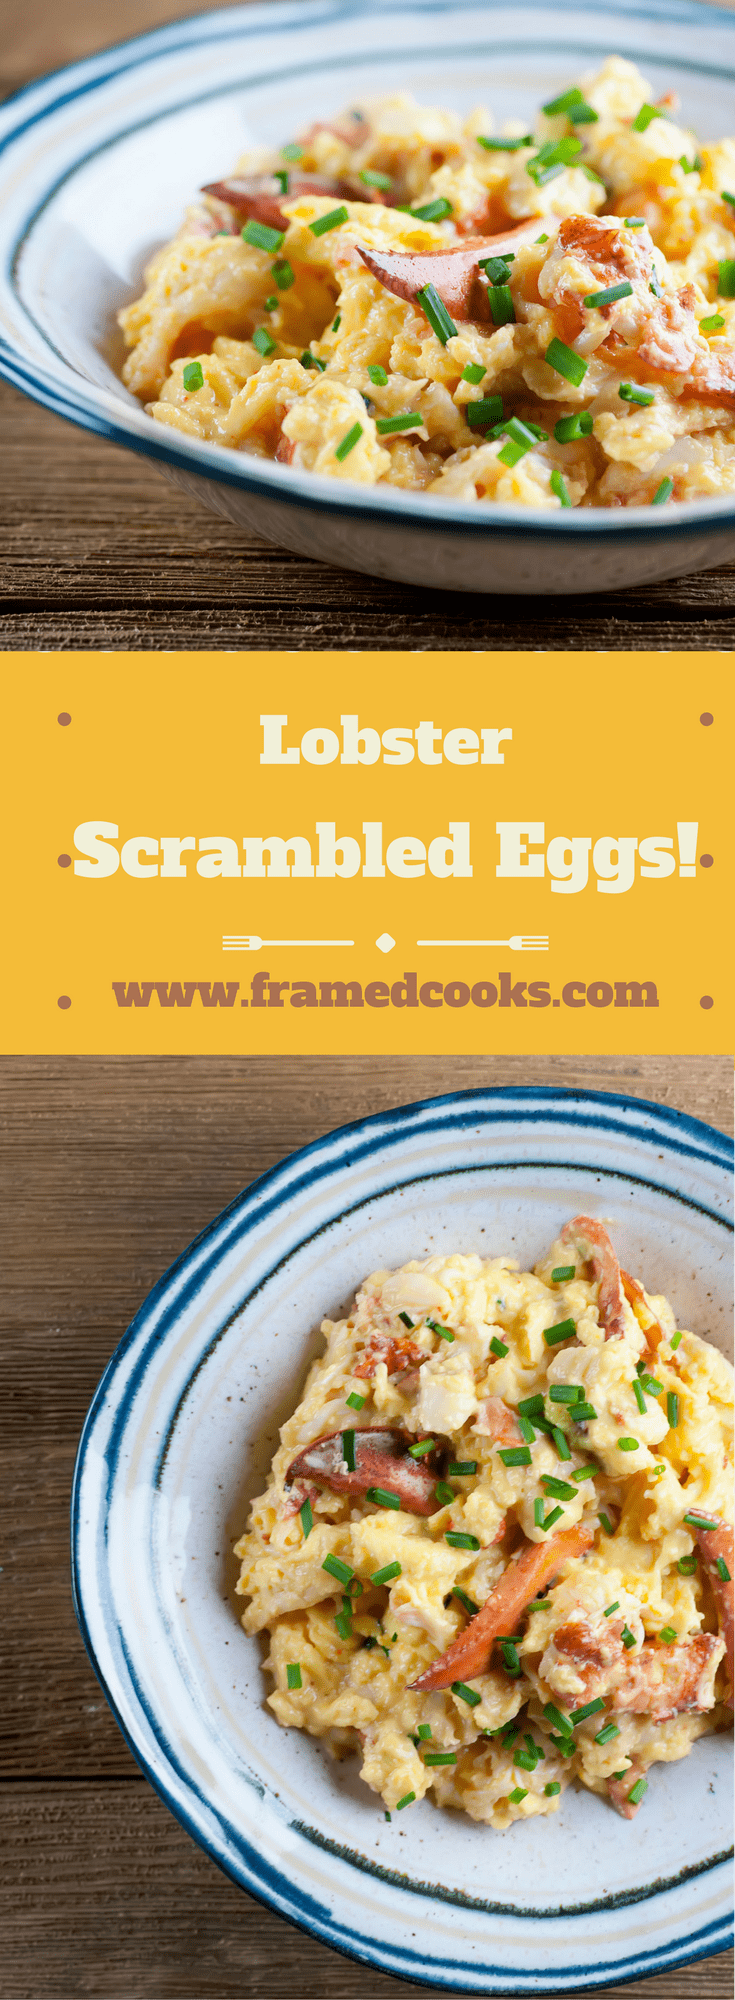 Lobster scrambled eggs are comfort food on top of comfort food.  Make this easy recipe for the ultimate breakfast or brunch treat for someone you love!